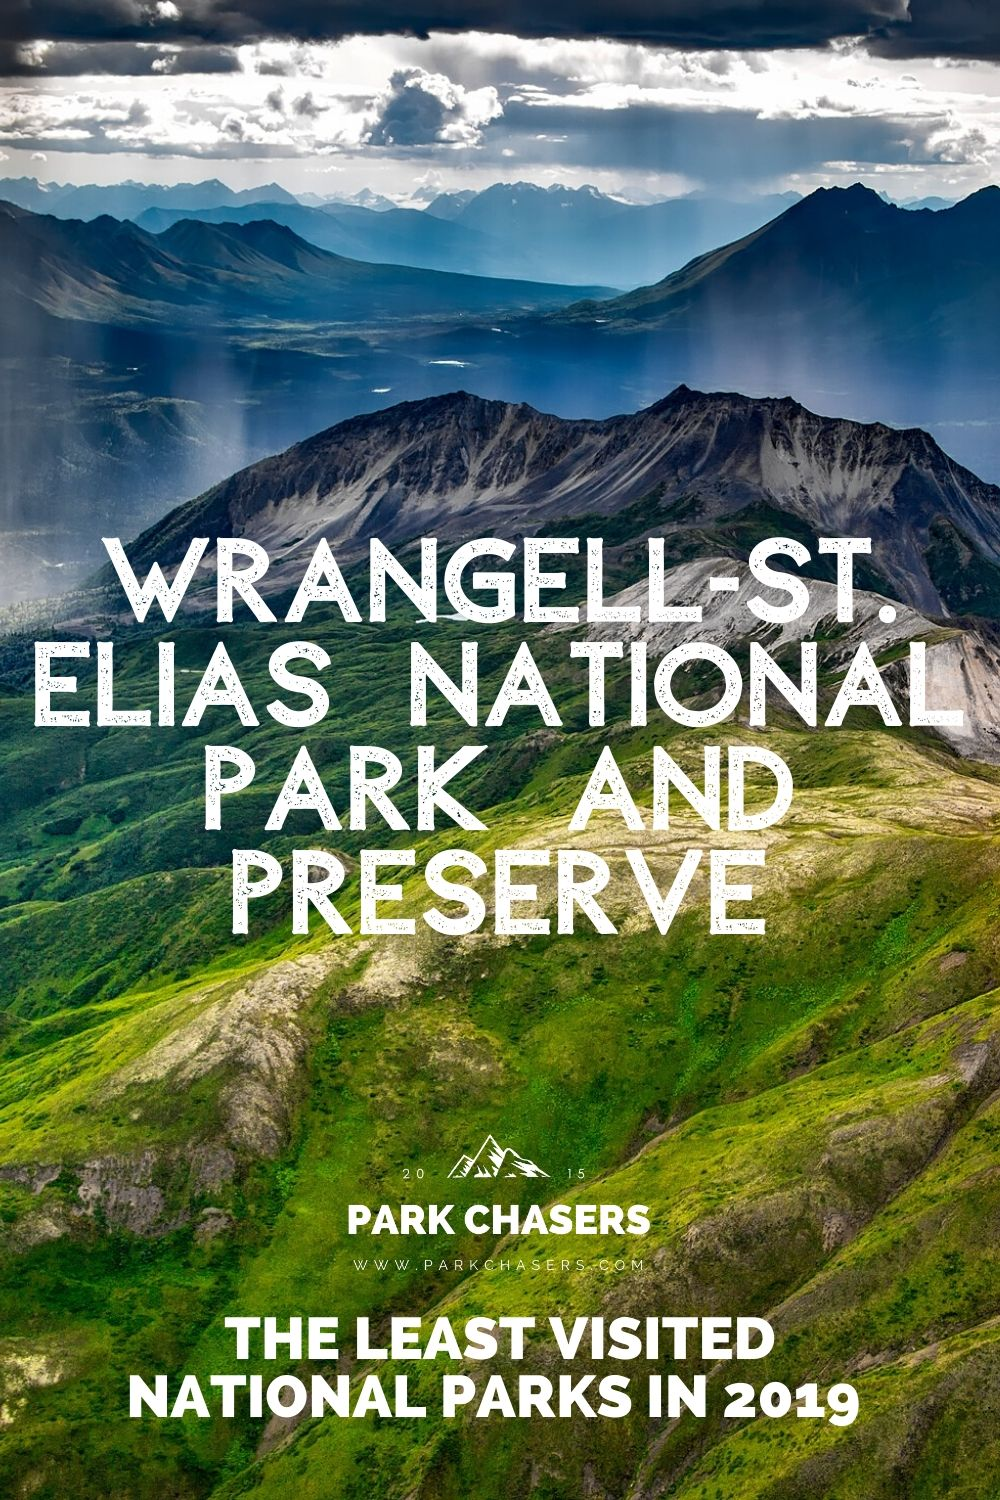 Wrangell-St. Elias National Park - one of the least visited national parks in 2019